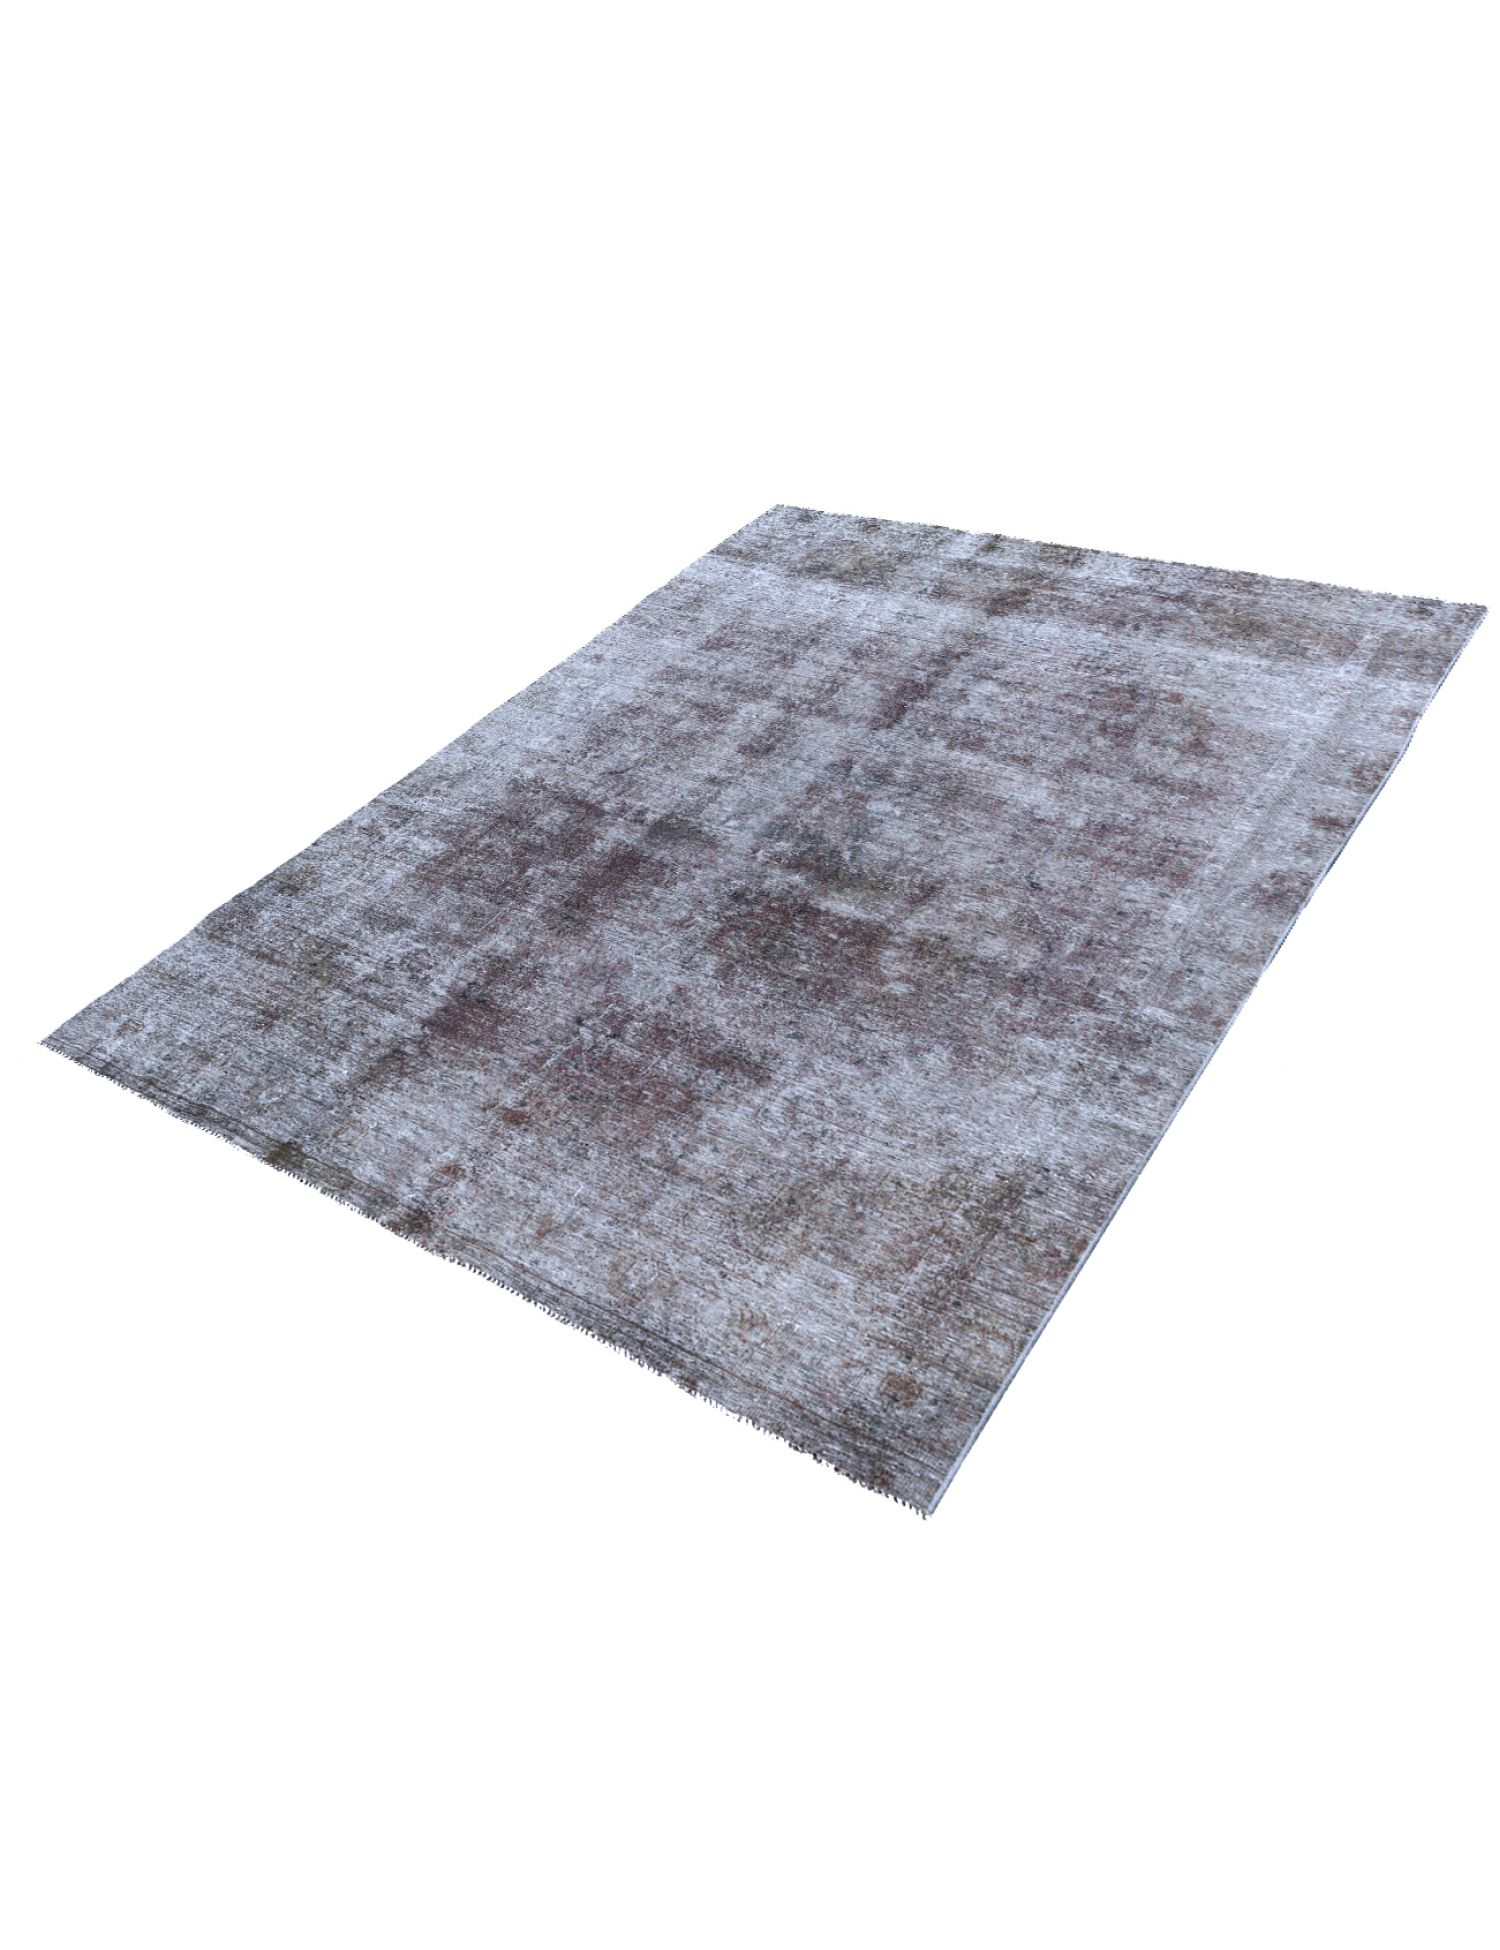 Vintage Carpet  grey <br/>327 x 230 cm